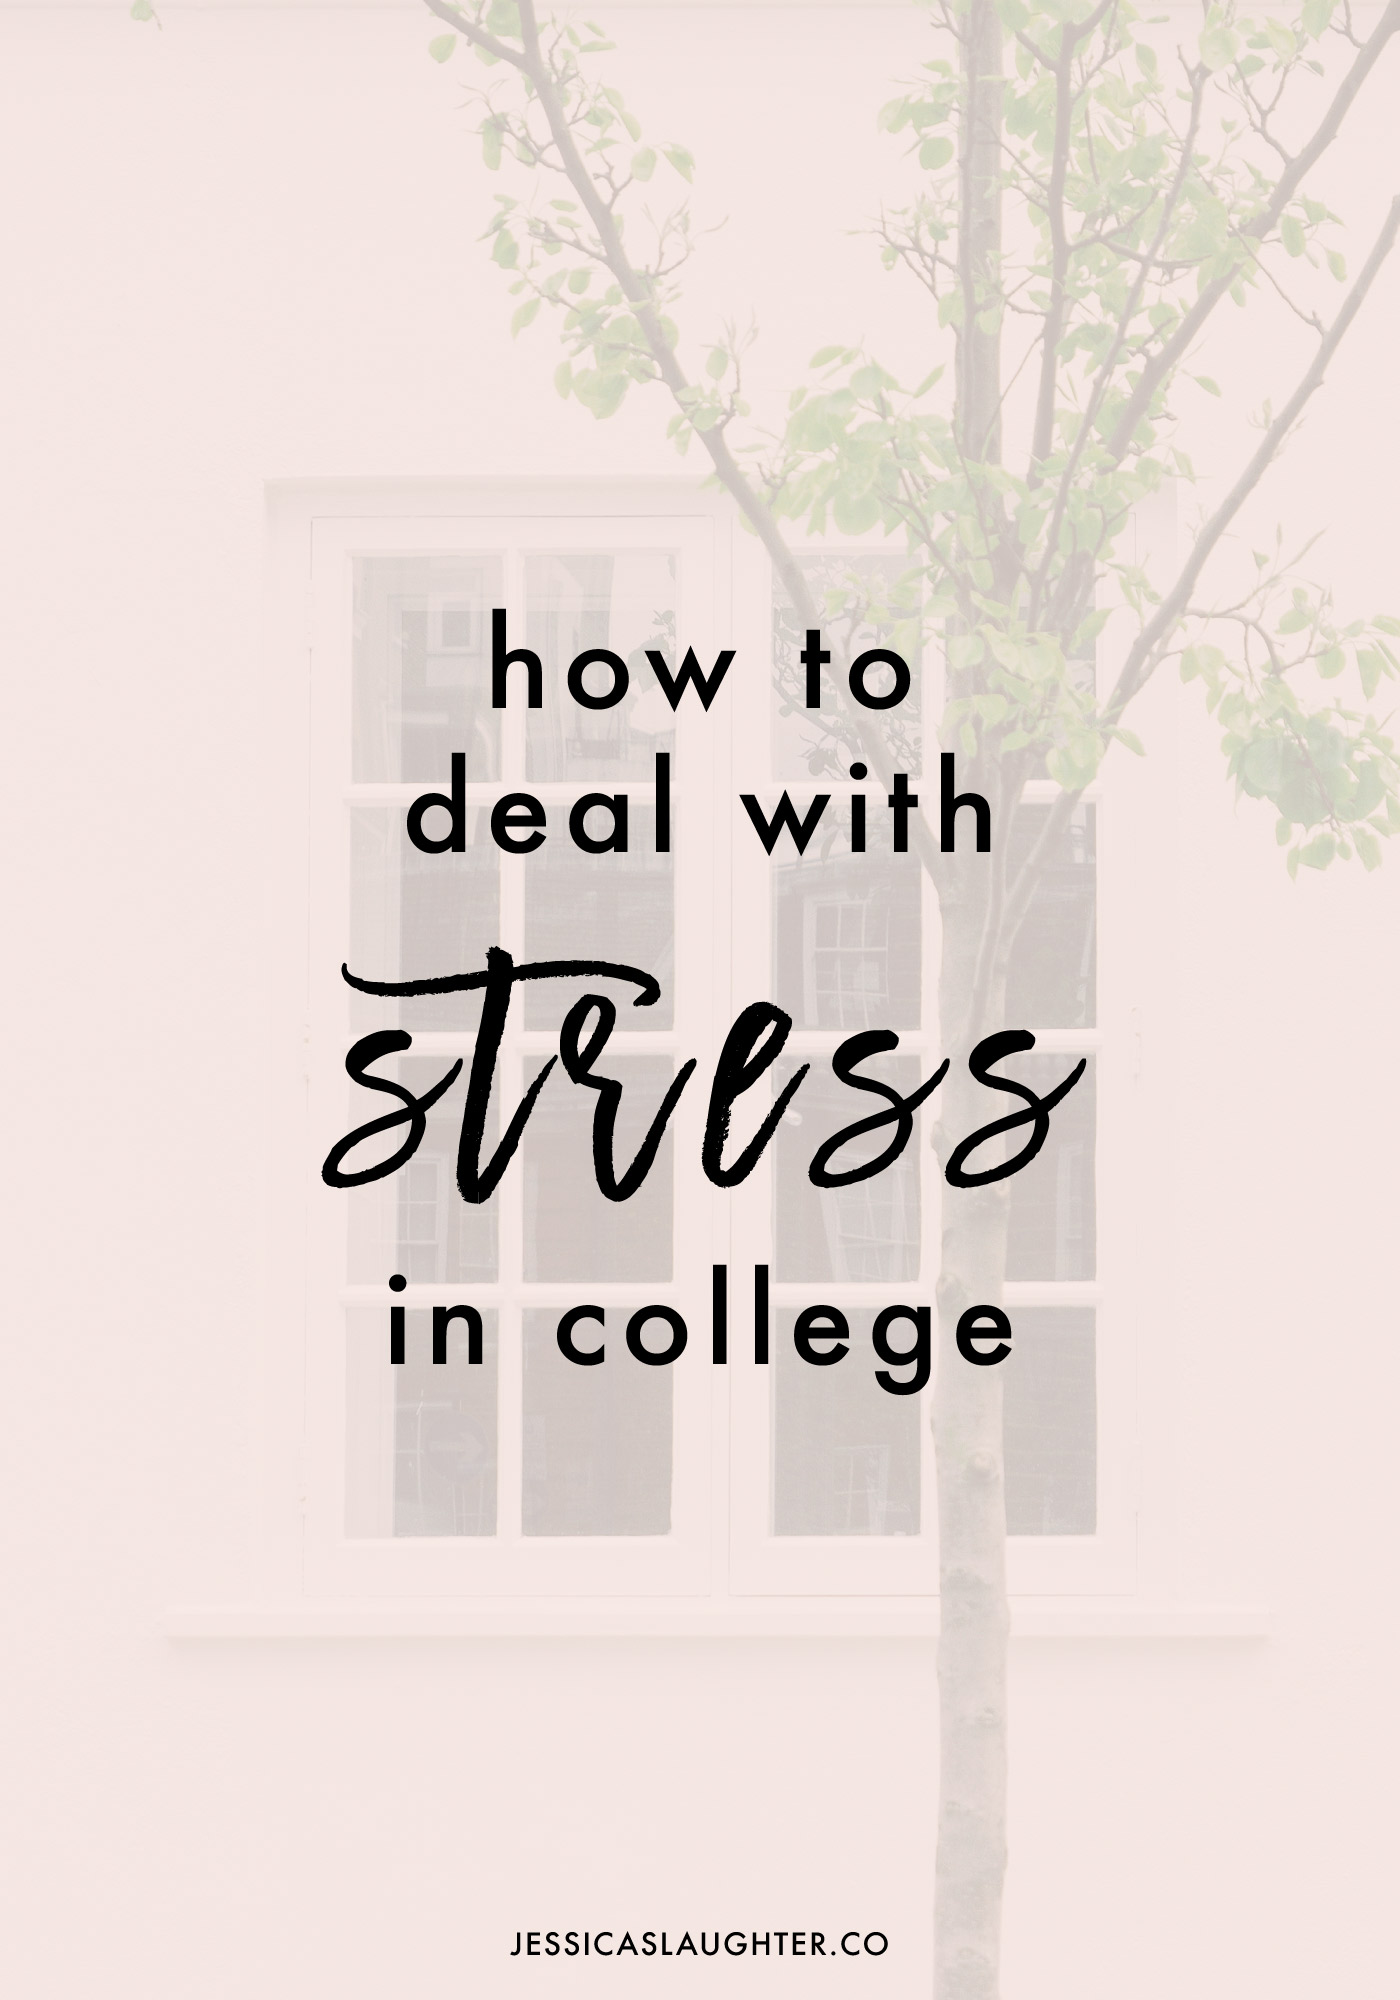 How To Deal With Stress In College | Jessica Slaughter